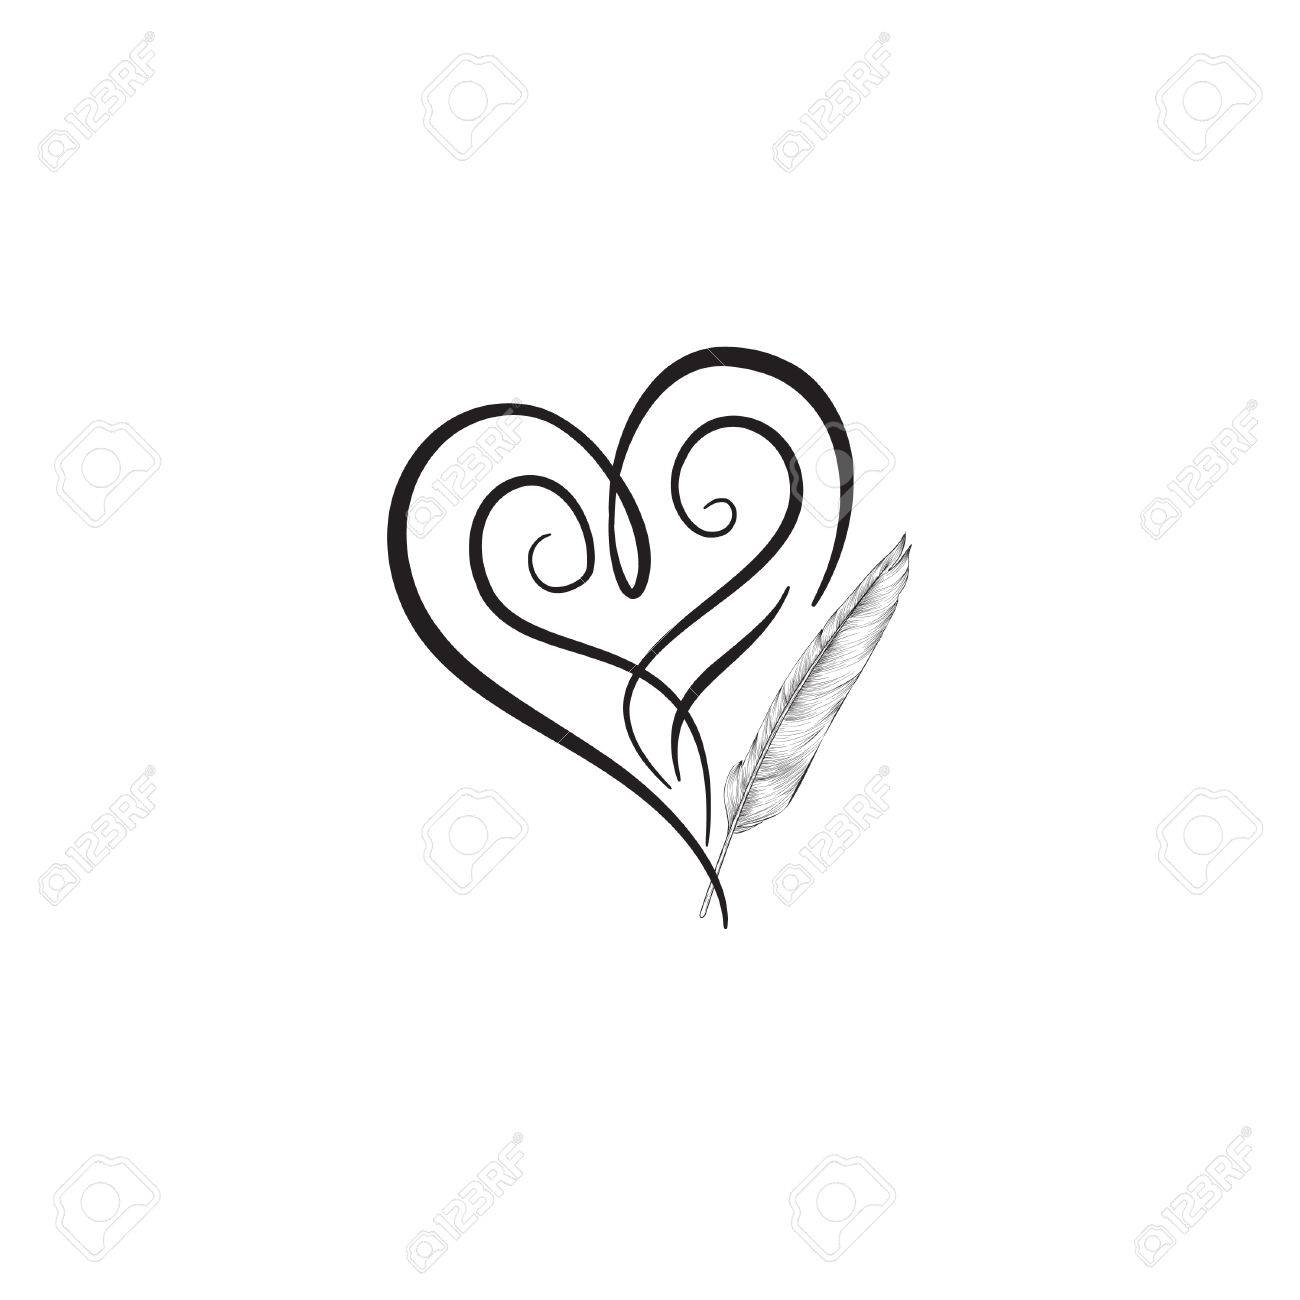 Love Heart Drawn By Feather Pen St Valentines Day Greeting Card